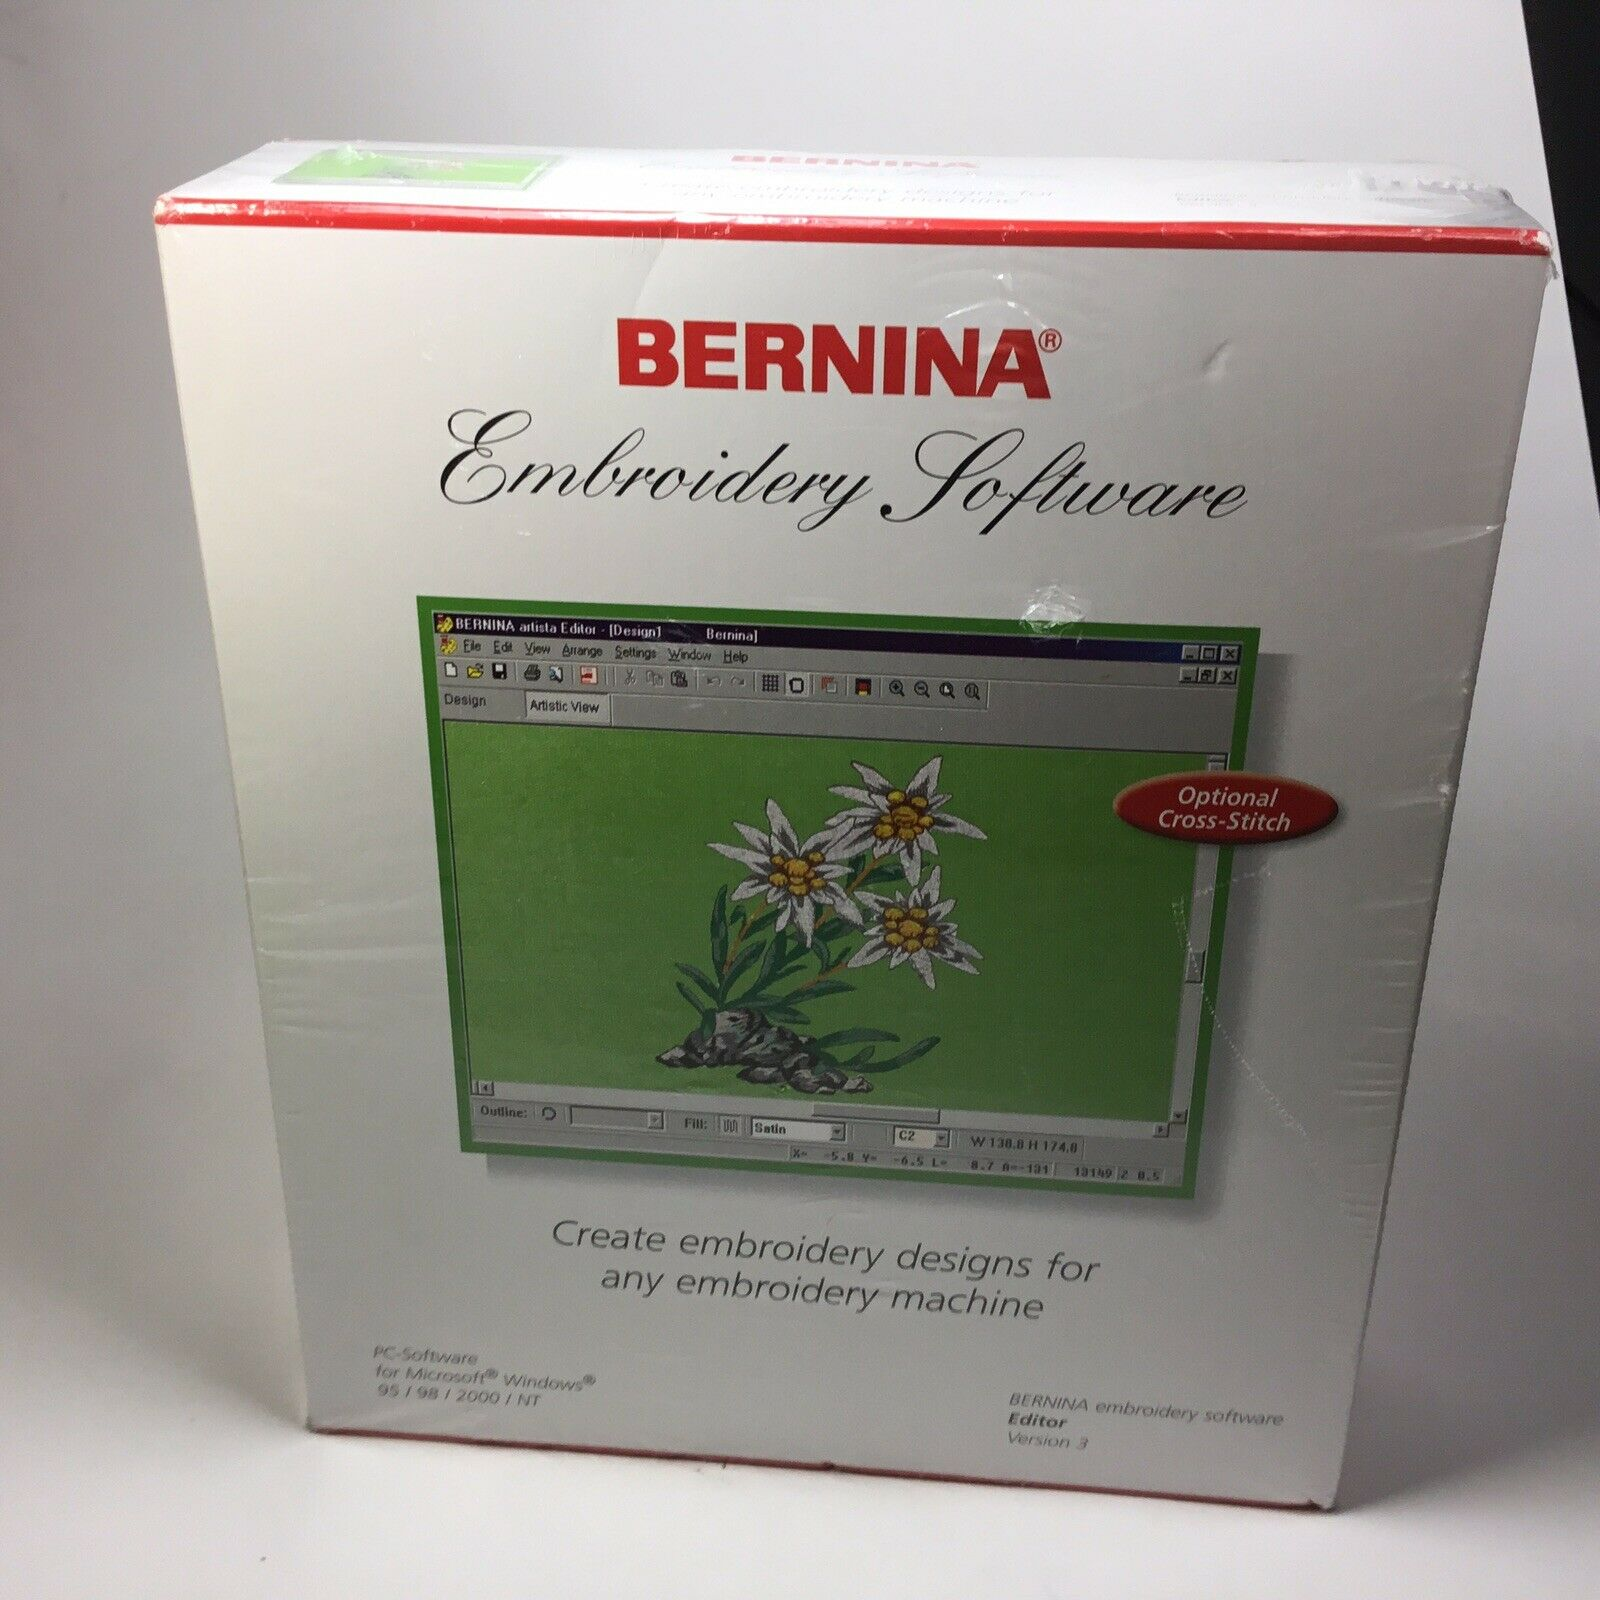 Bernina Embroidery Software Editor Version 3 For Artista Aurora Machines For Sale Online